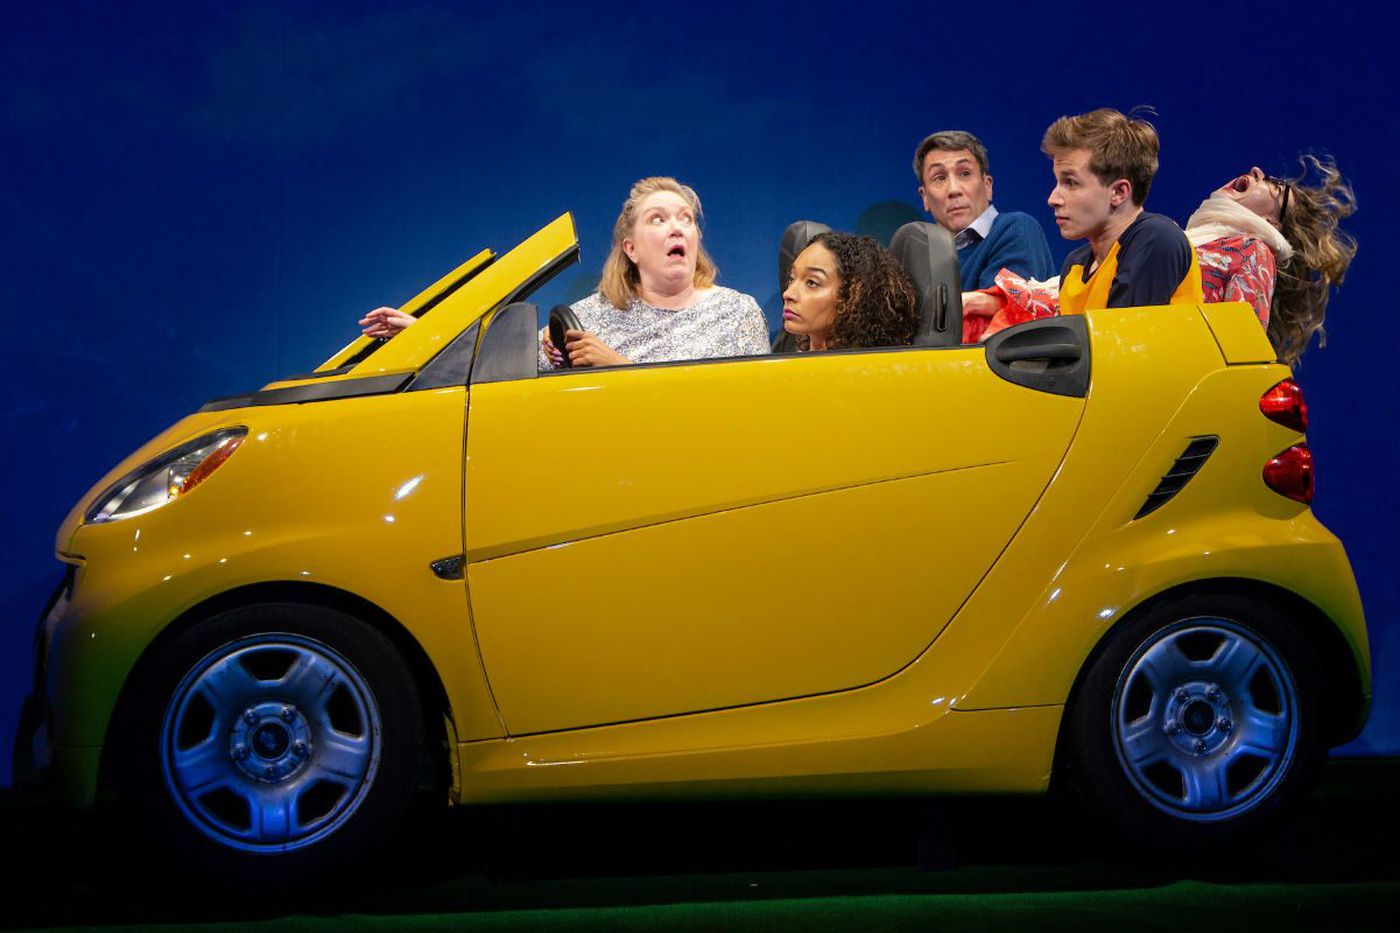 'Turning off the Morning News' at McCarter Theatre: Crazy-funny, laced with darkness